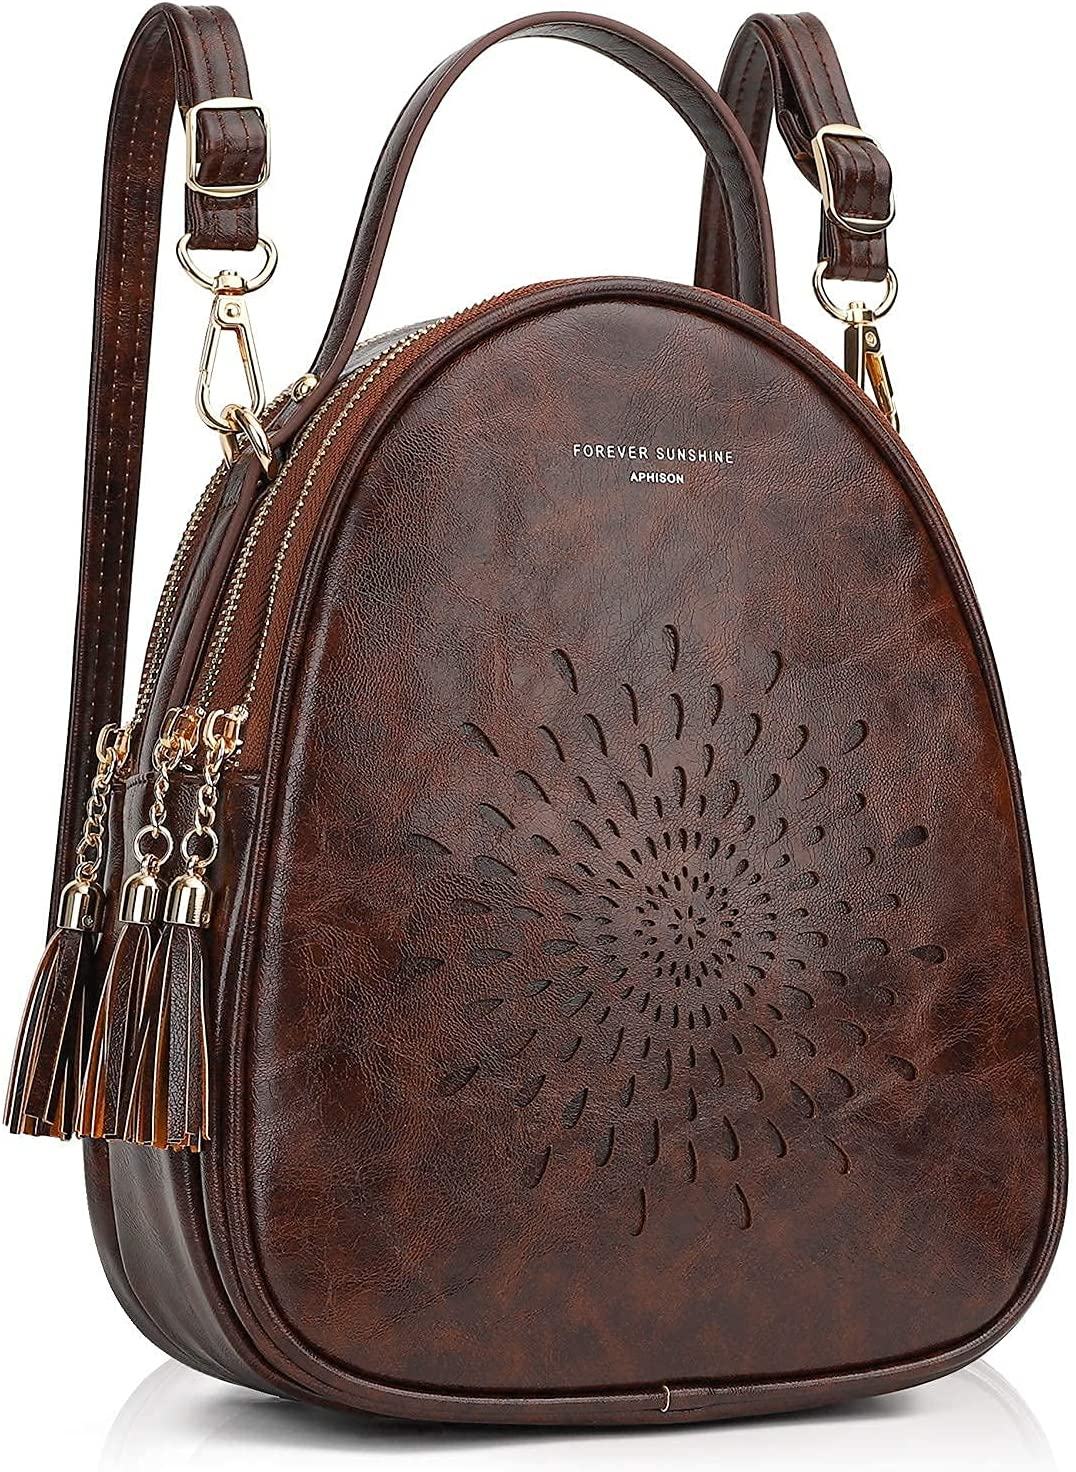 APHISON Womens Fashion Backpack & Top-Handle Bags Tote Bags 1953-8173-1 Coffee-Brown